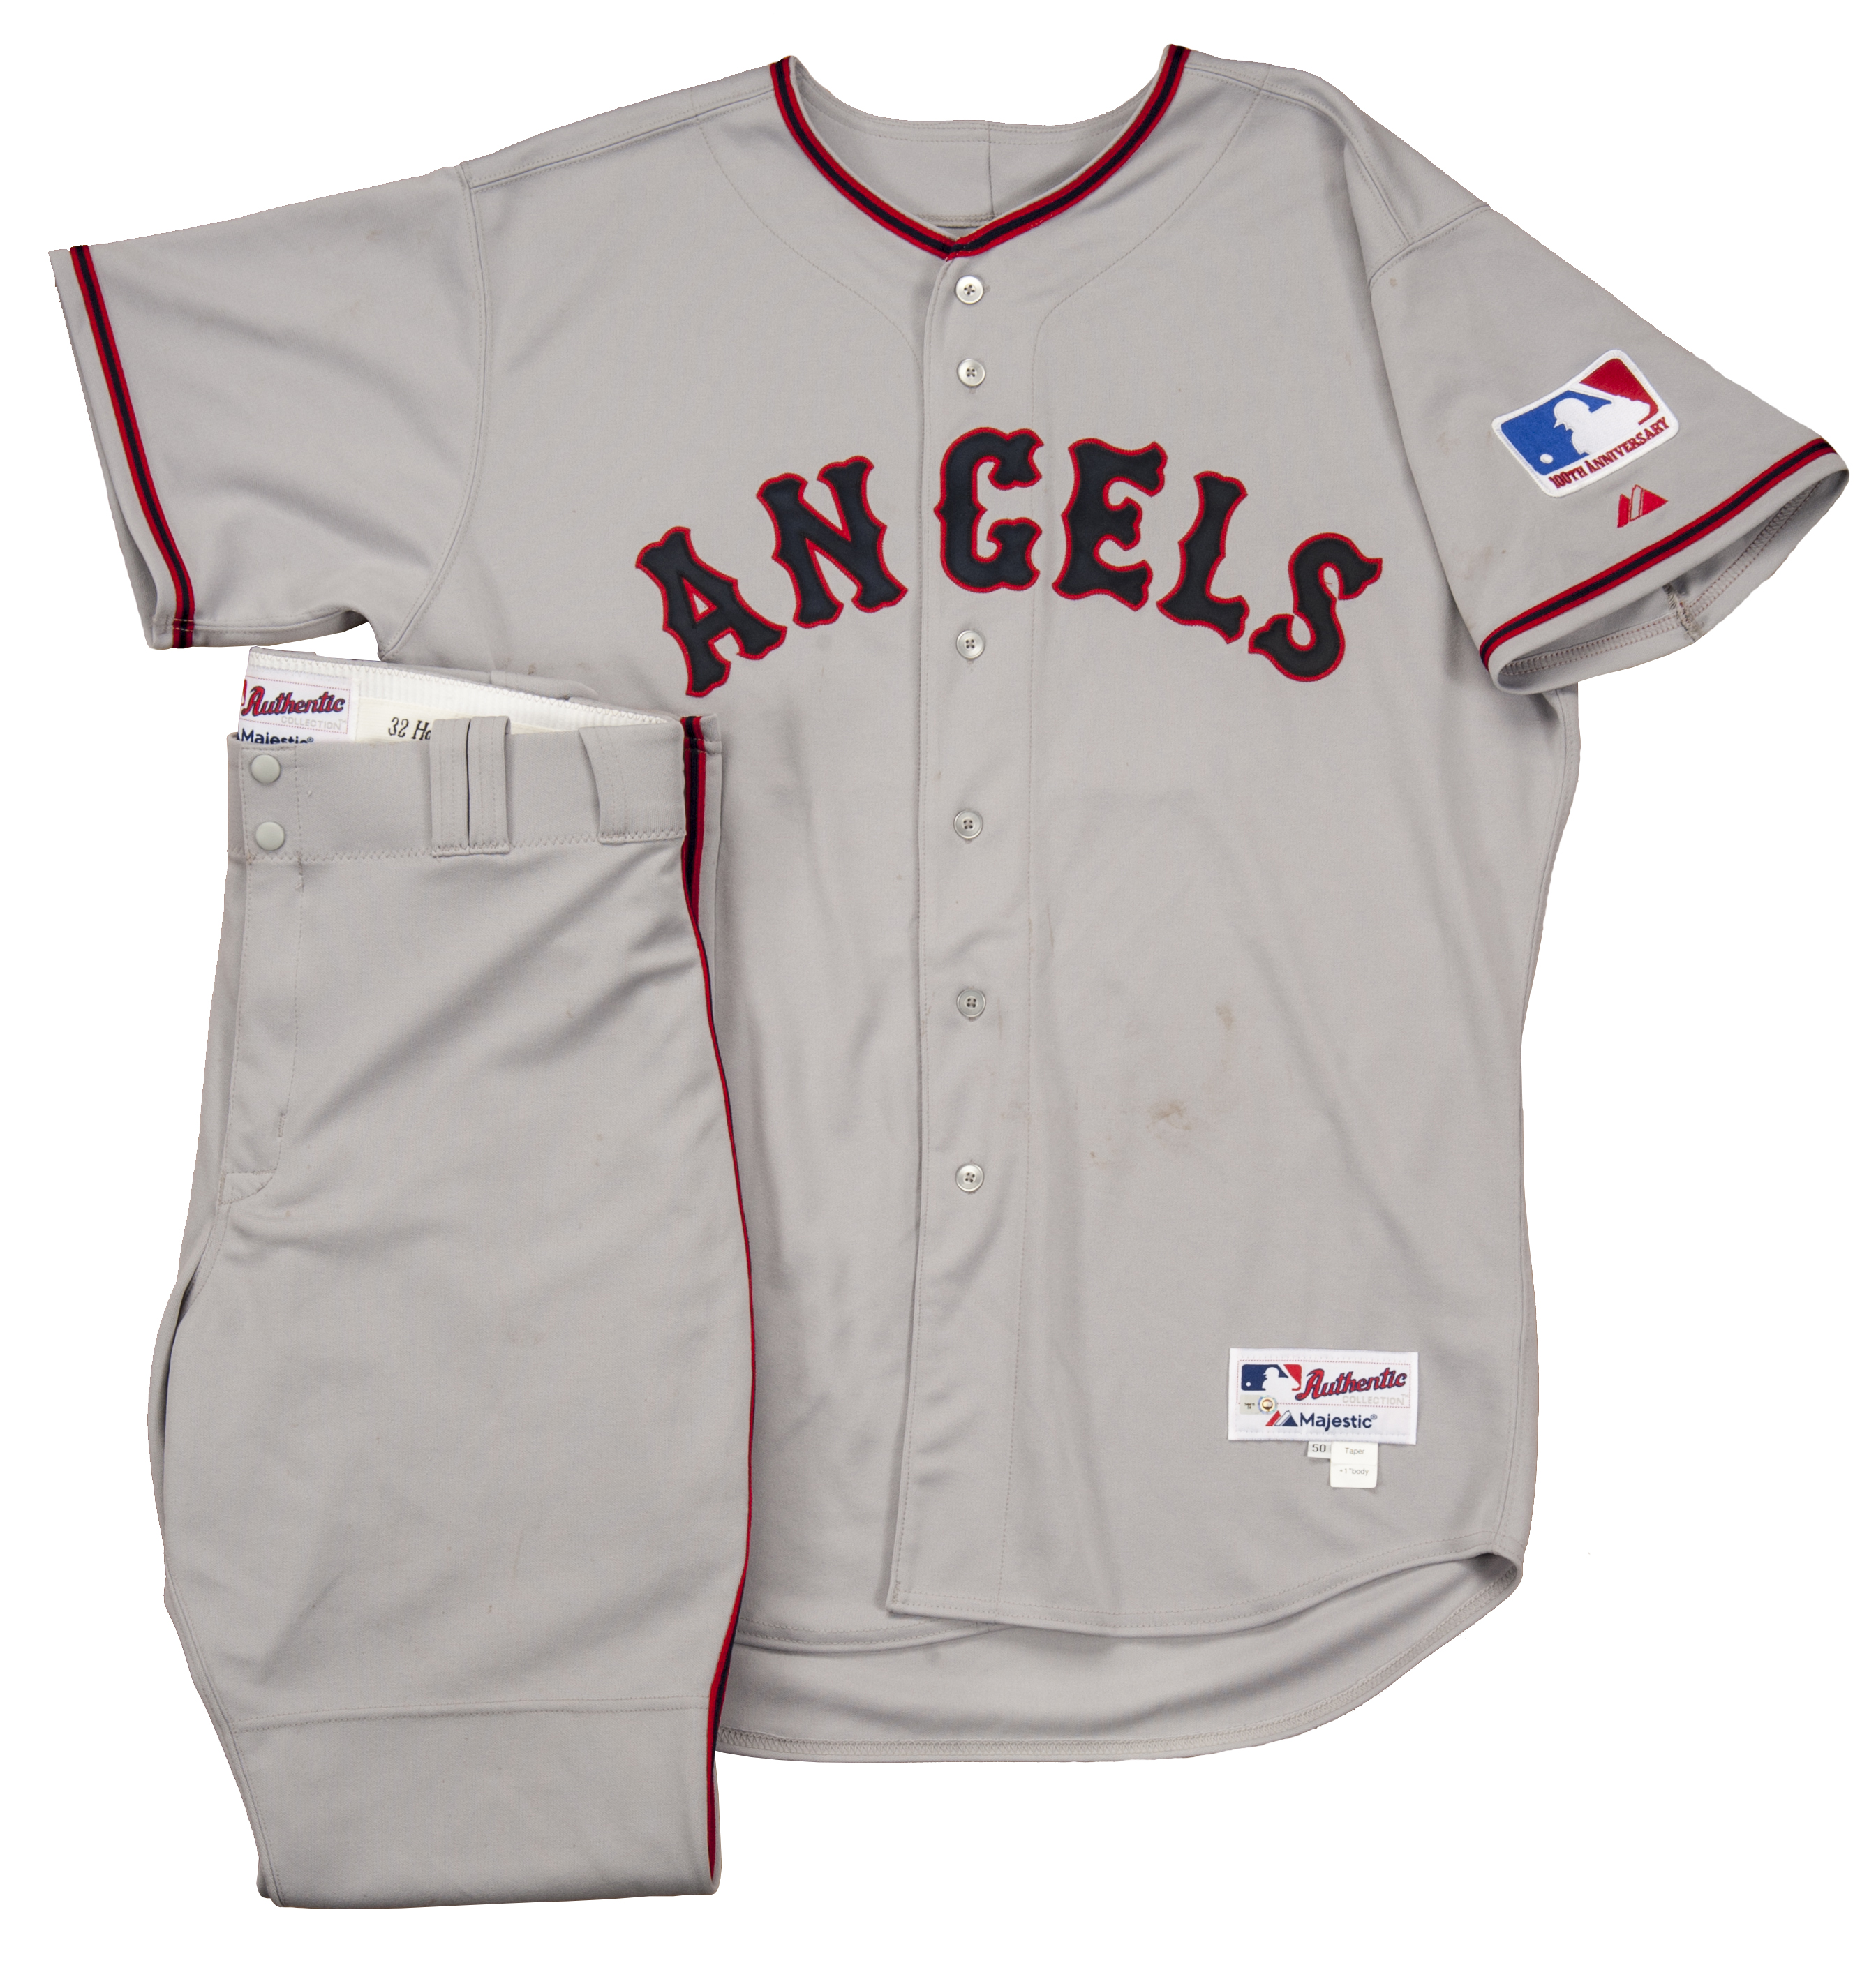 ... Cool Base Jersey 2013 Josh Hamilton Los Angeles Angels Game Worn Josh  Hamilton Los Angeles Angels Majestic Alternate 6300 Player Authentic ... 4649d383a